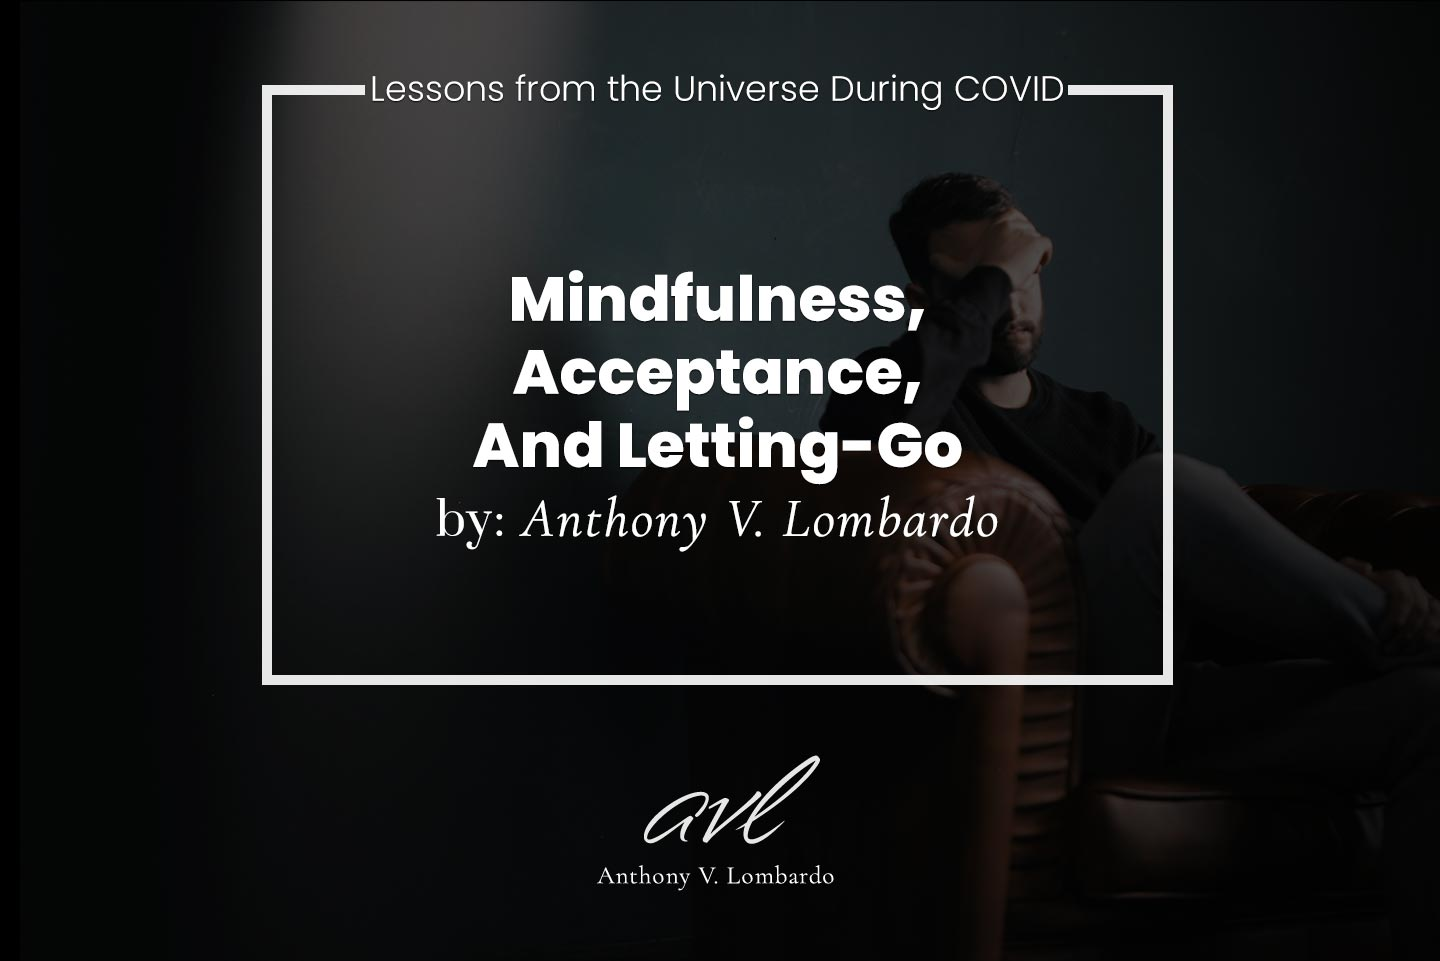 Lessons from the Universe During COVID. Mindfulness, Acceptance, And Letting-Go